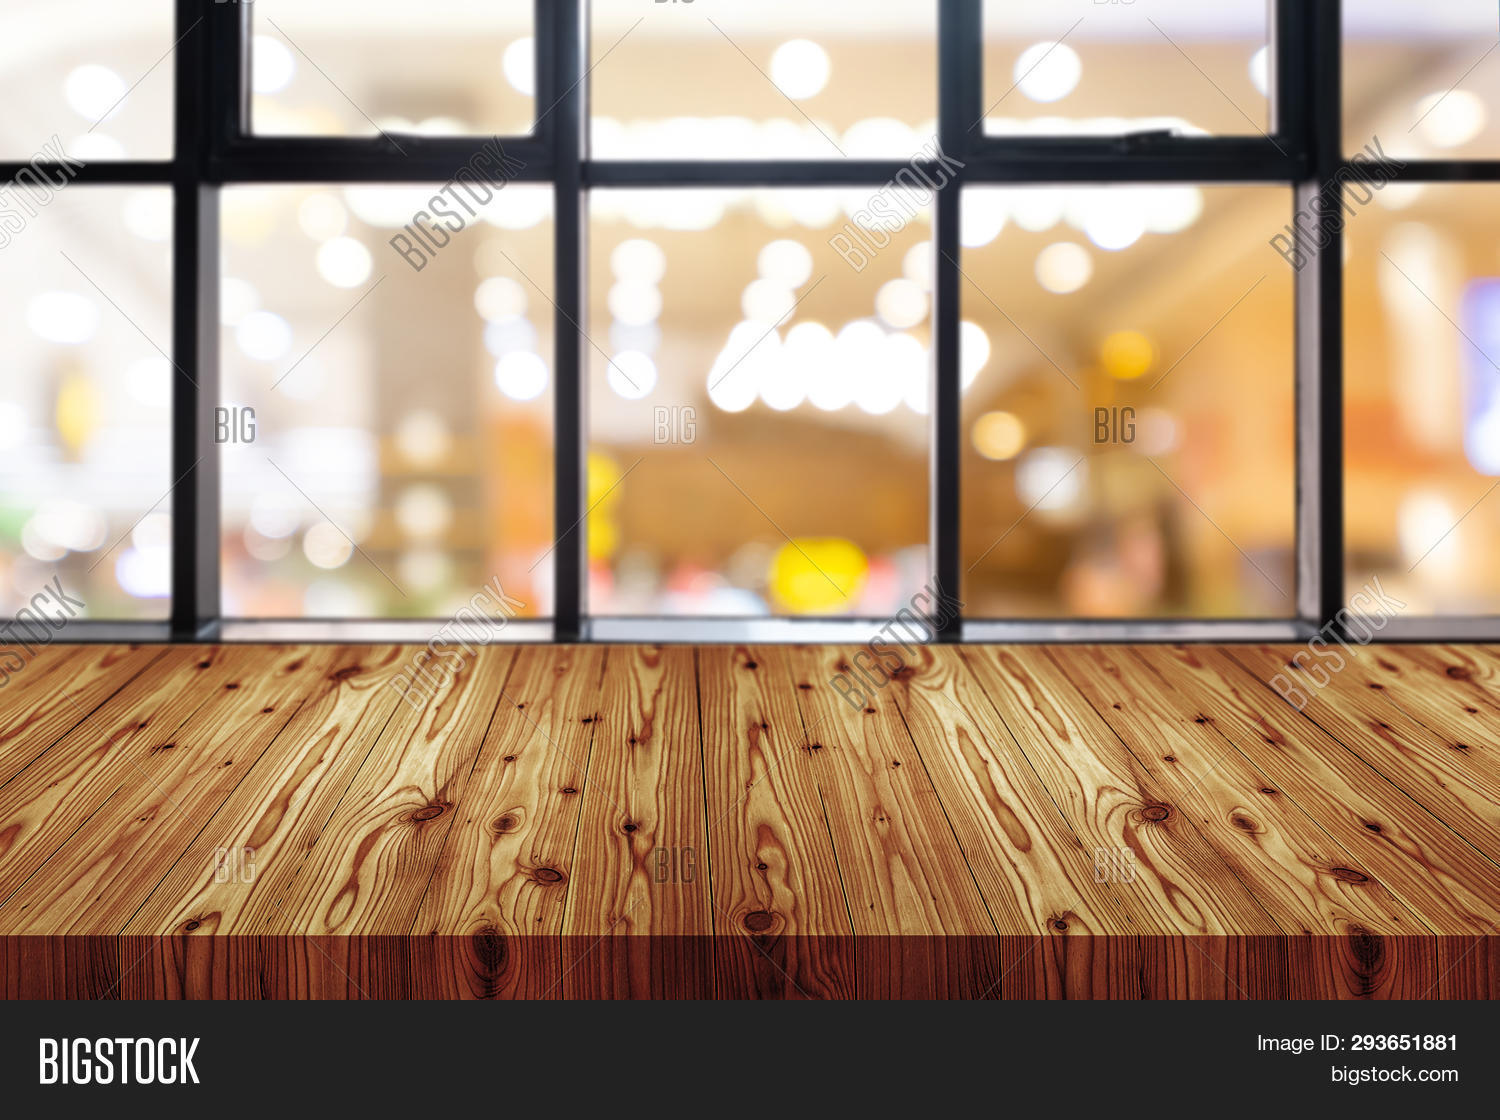 Picture of: Empty Wooden Table Top Image Photo Free Trial Bigstock